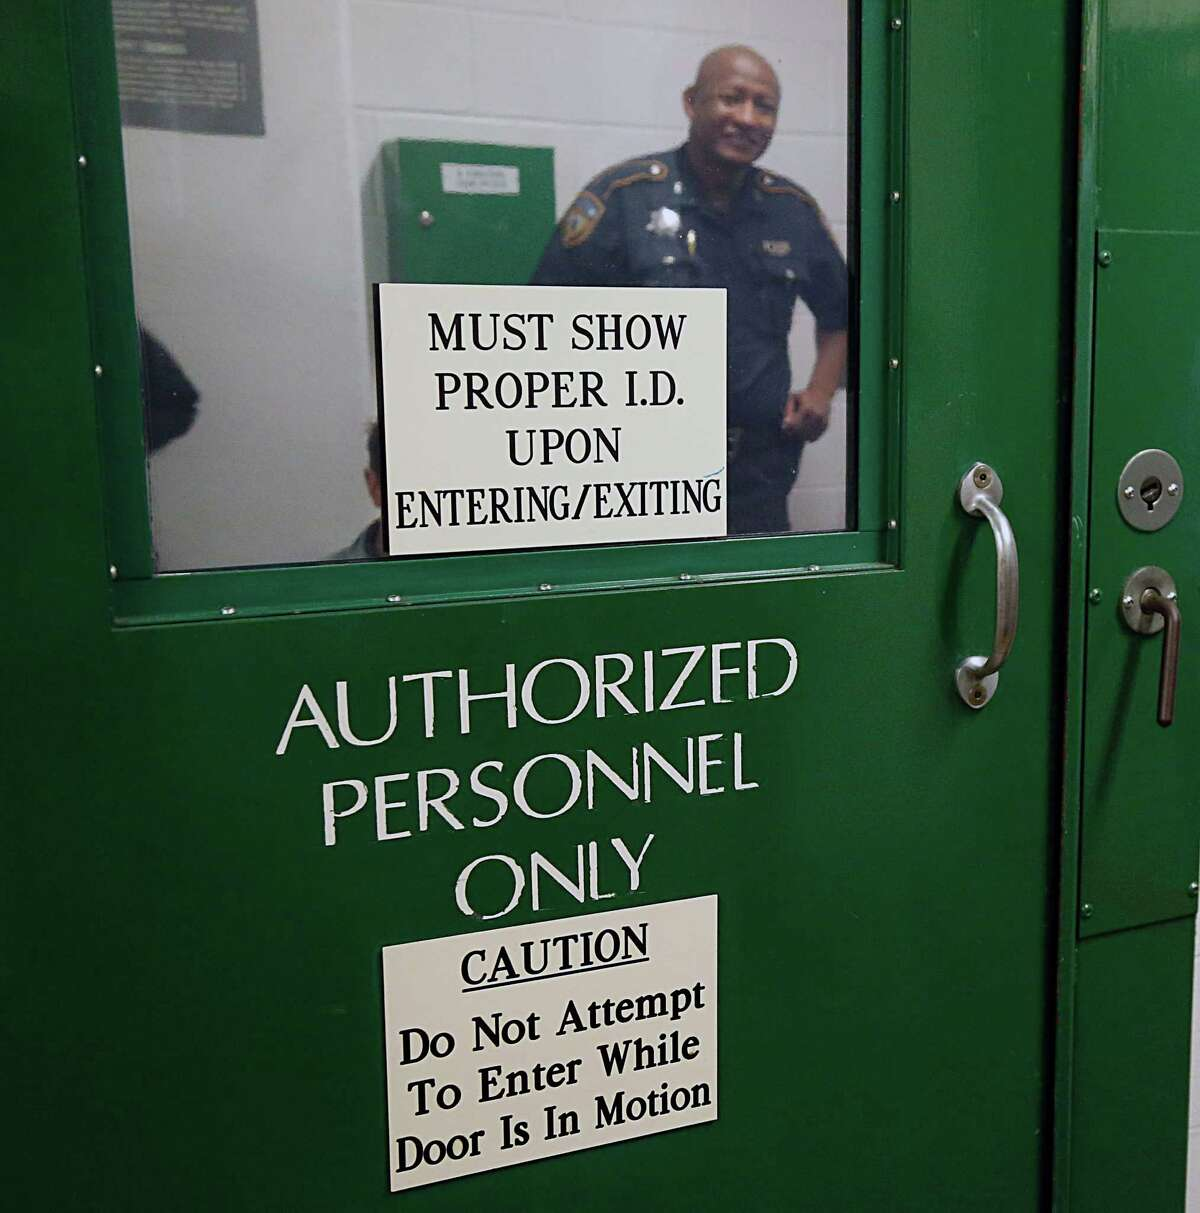 A Harris County Sheriff Deputy is on duty during a tour of one of the county's maximum security jail facilities located at 1200 Baker street on Friday, Sept. 25, 2015.